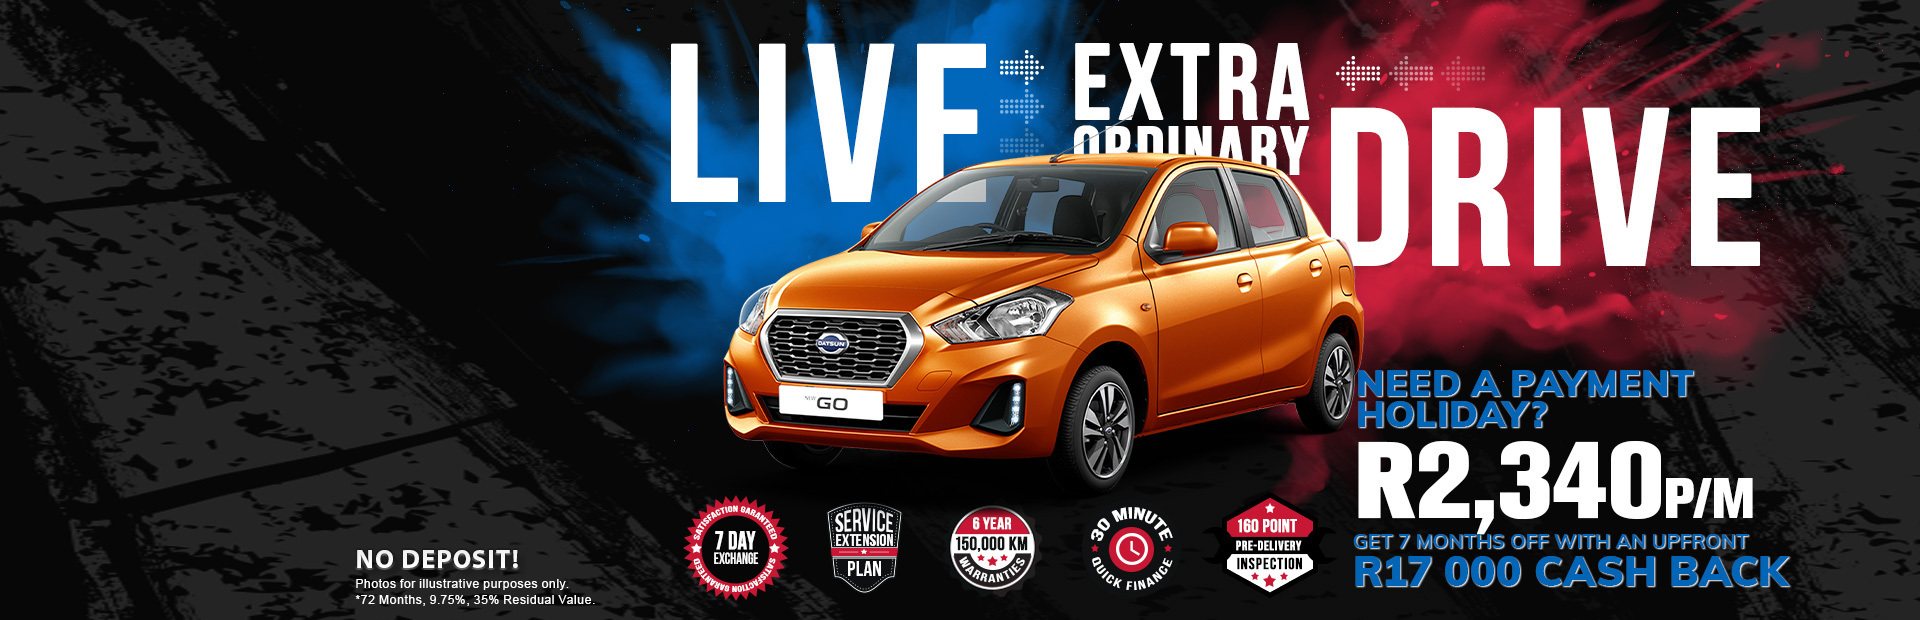 nec desktop website banner datsun go